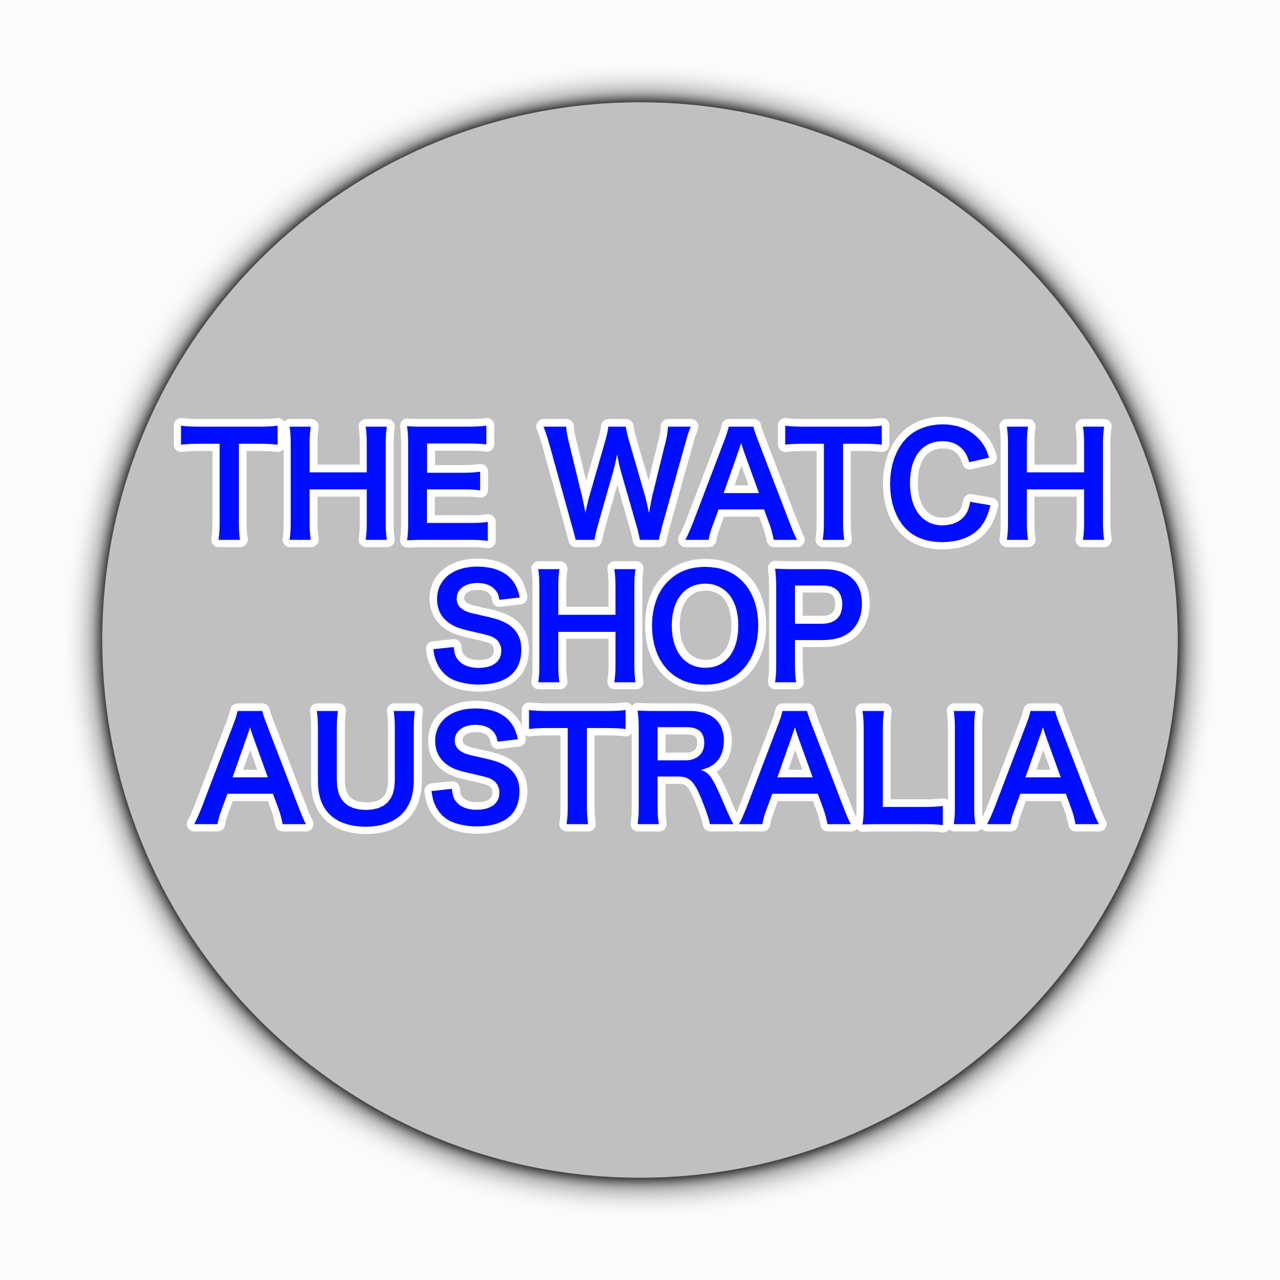 the watch shop australia